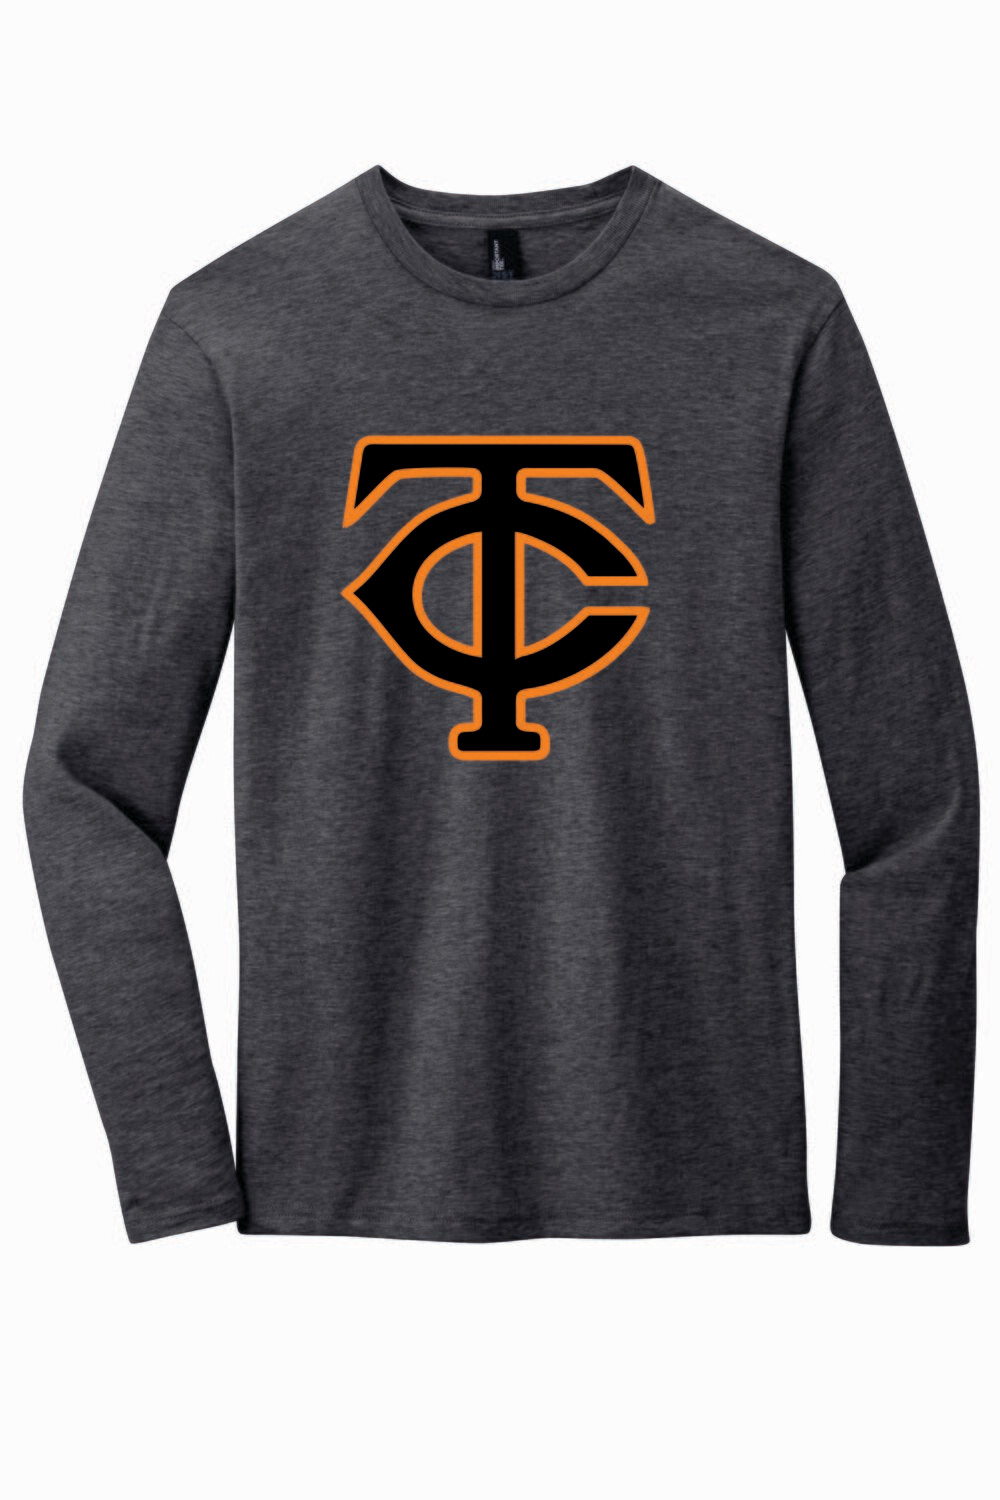 DT6200 District Very Important Tee Long Sleeve